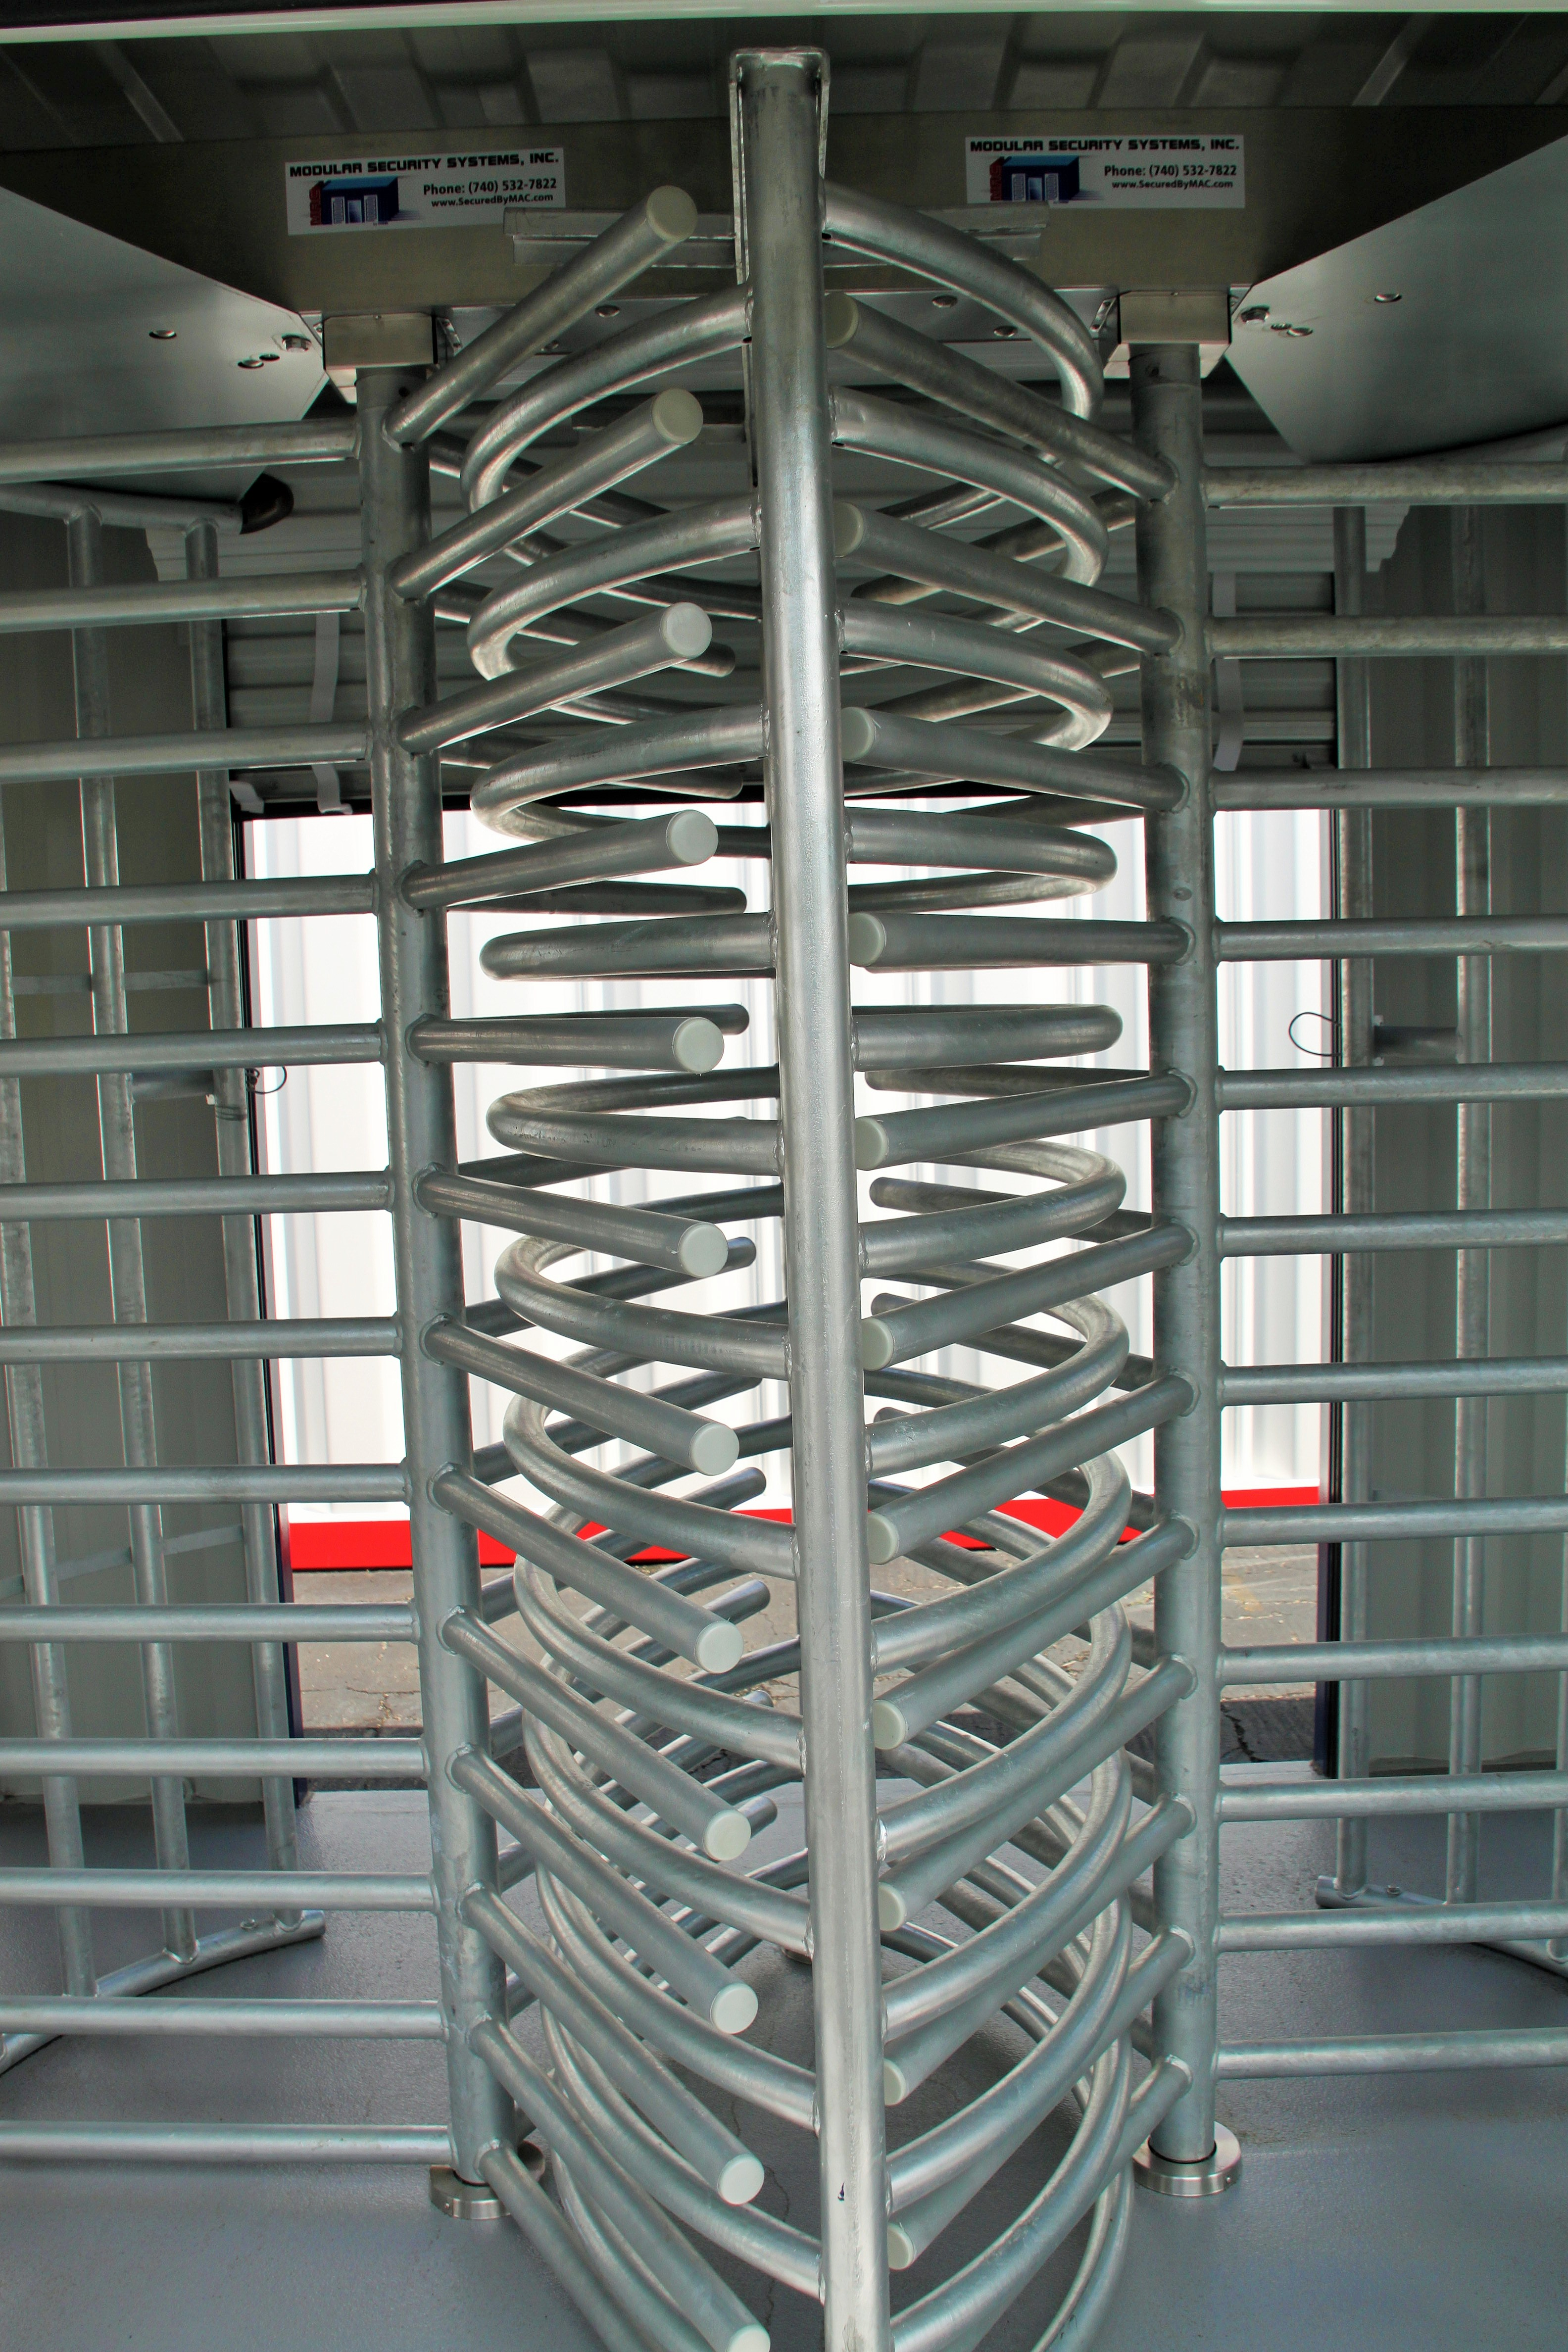 Modular Access Control, MSSI, turnstile security, perimeter turnstiles, Turnstile, Turnstiles, patented MAC Portal, Modular Security Systems Inc, perimeter security solution, turstiles